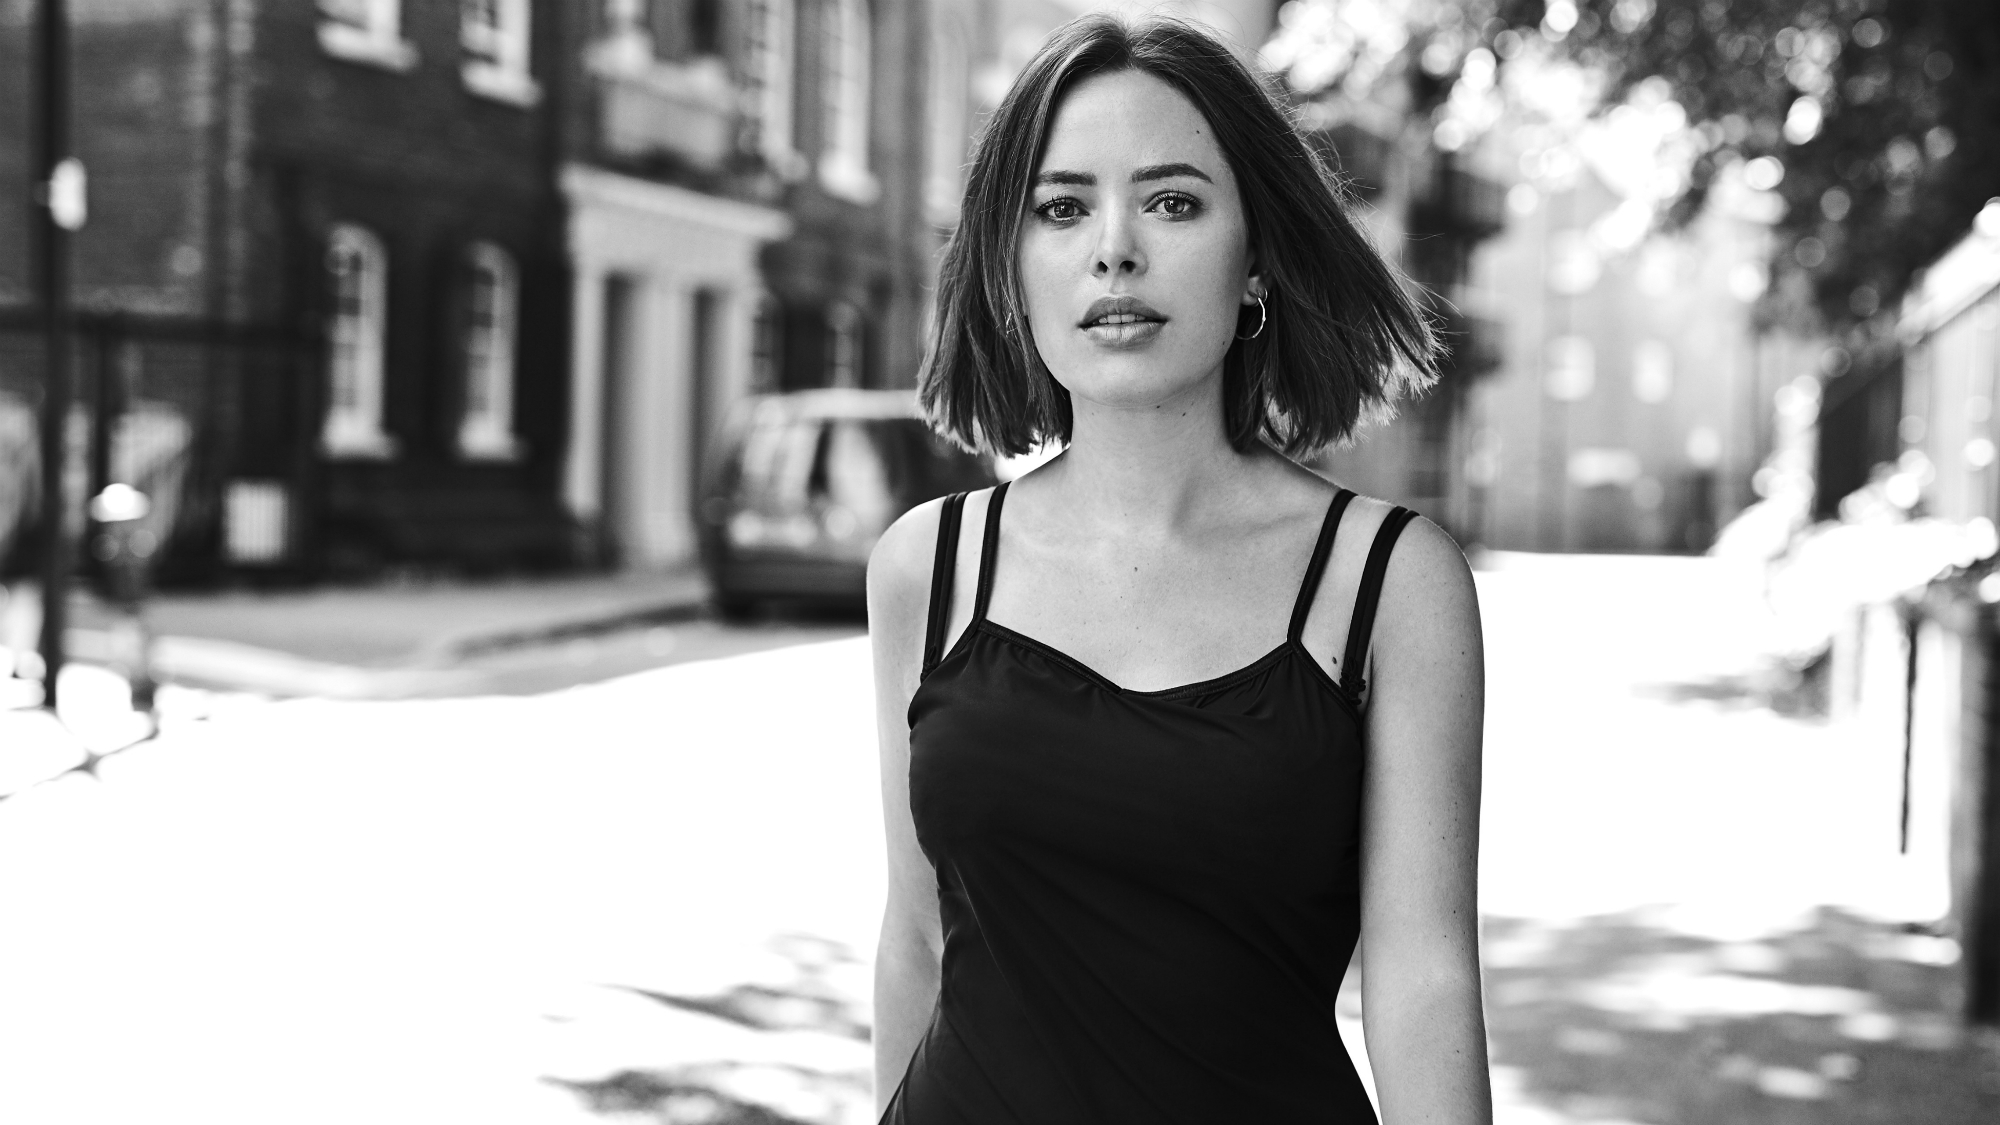 Tanya Burr – Without my phone, I can just breathe'